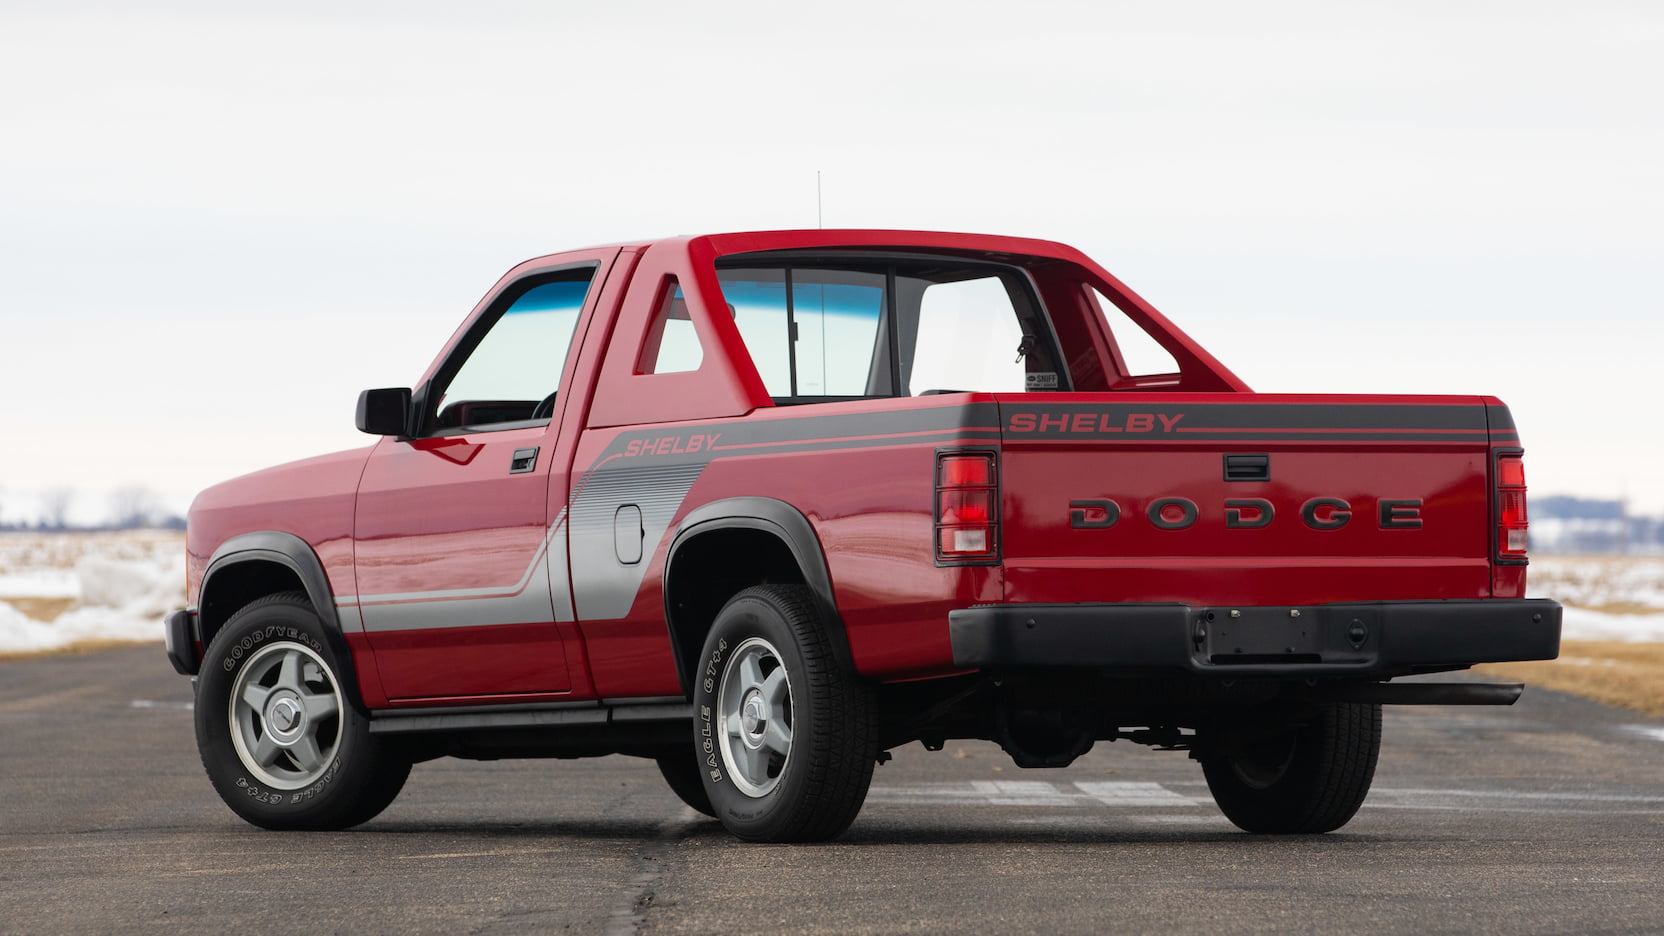 Dodge-Shelby-Dakota-1989-19